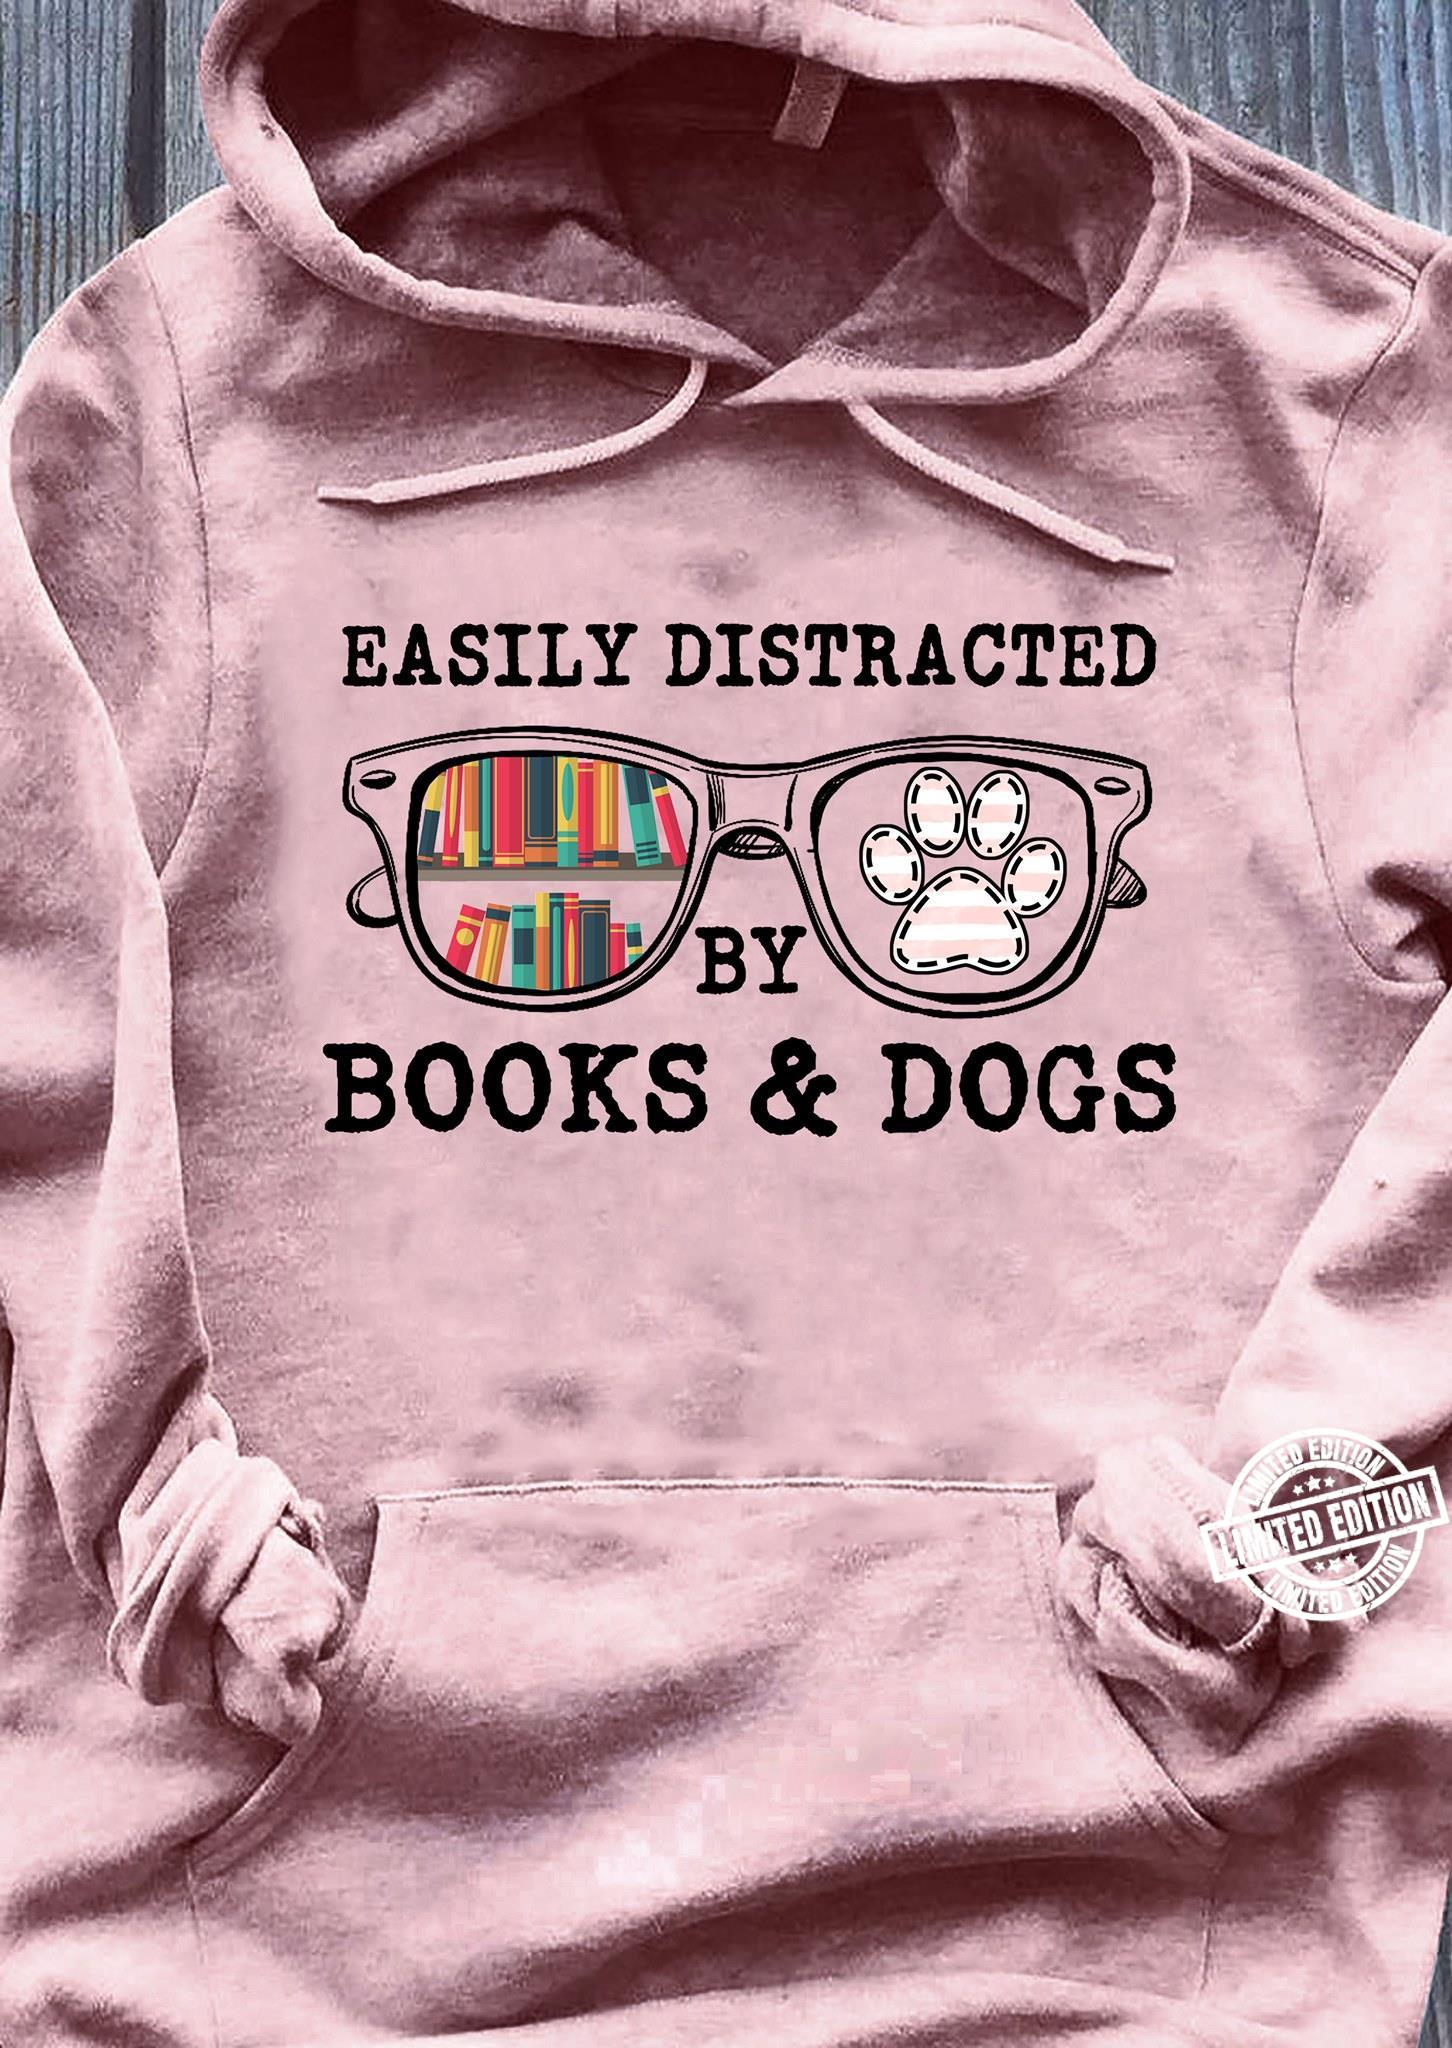 Easily distracted by books and dogs shirt